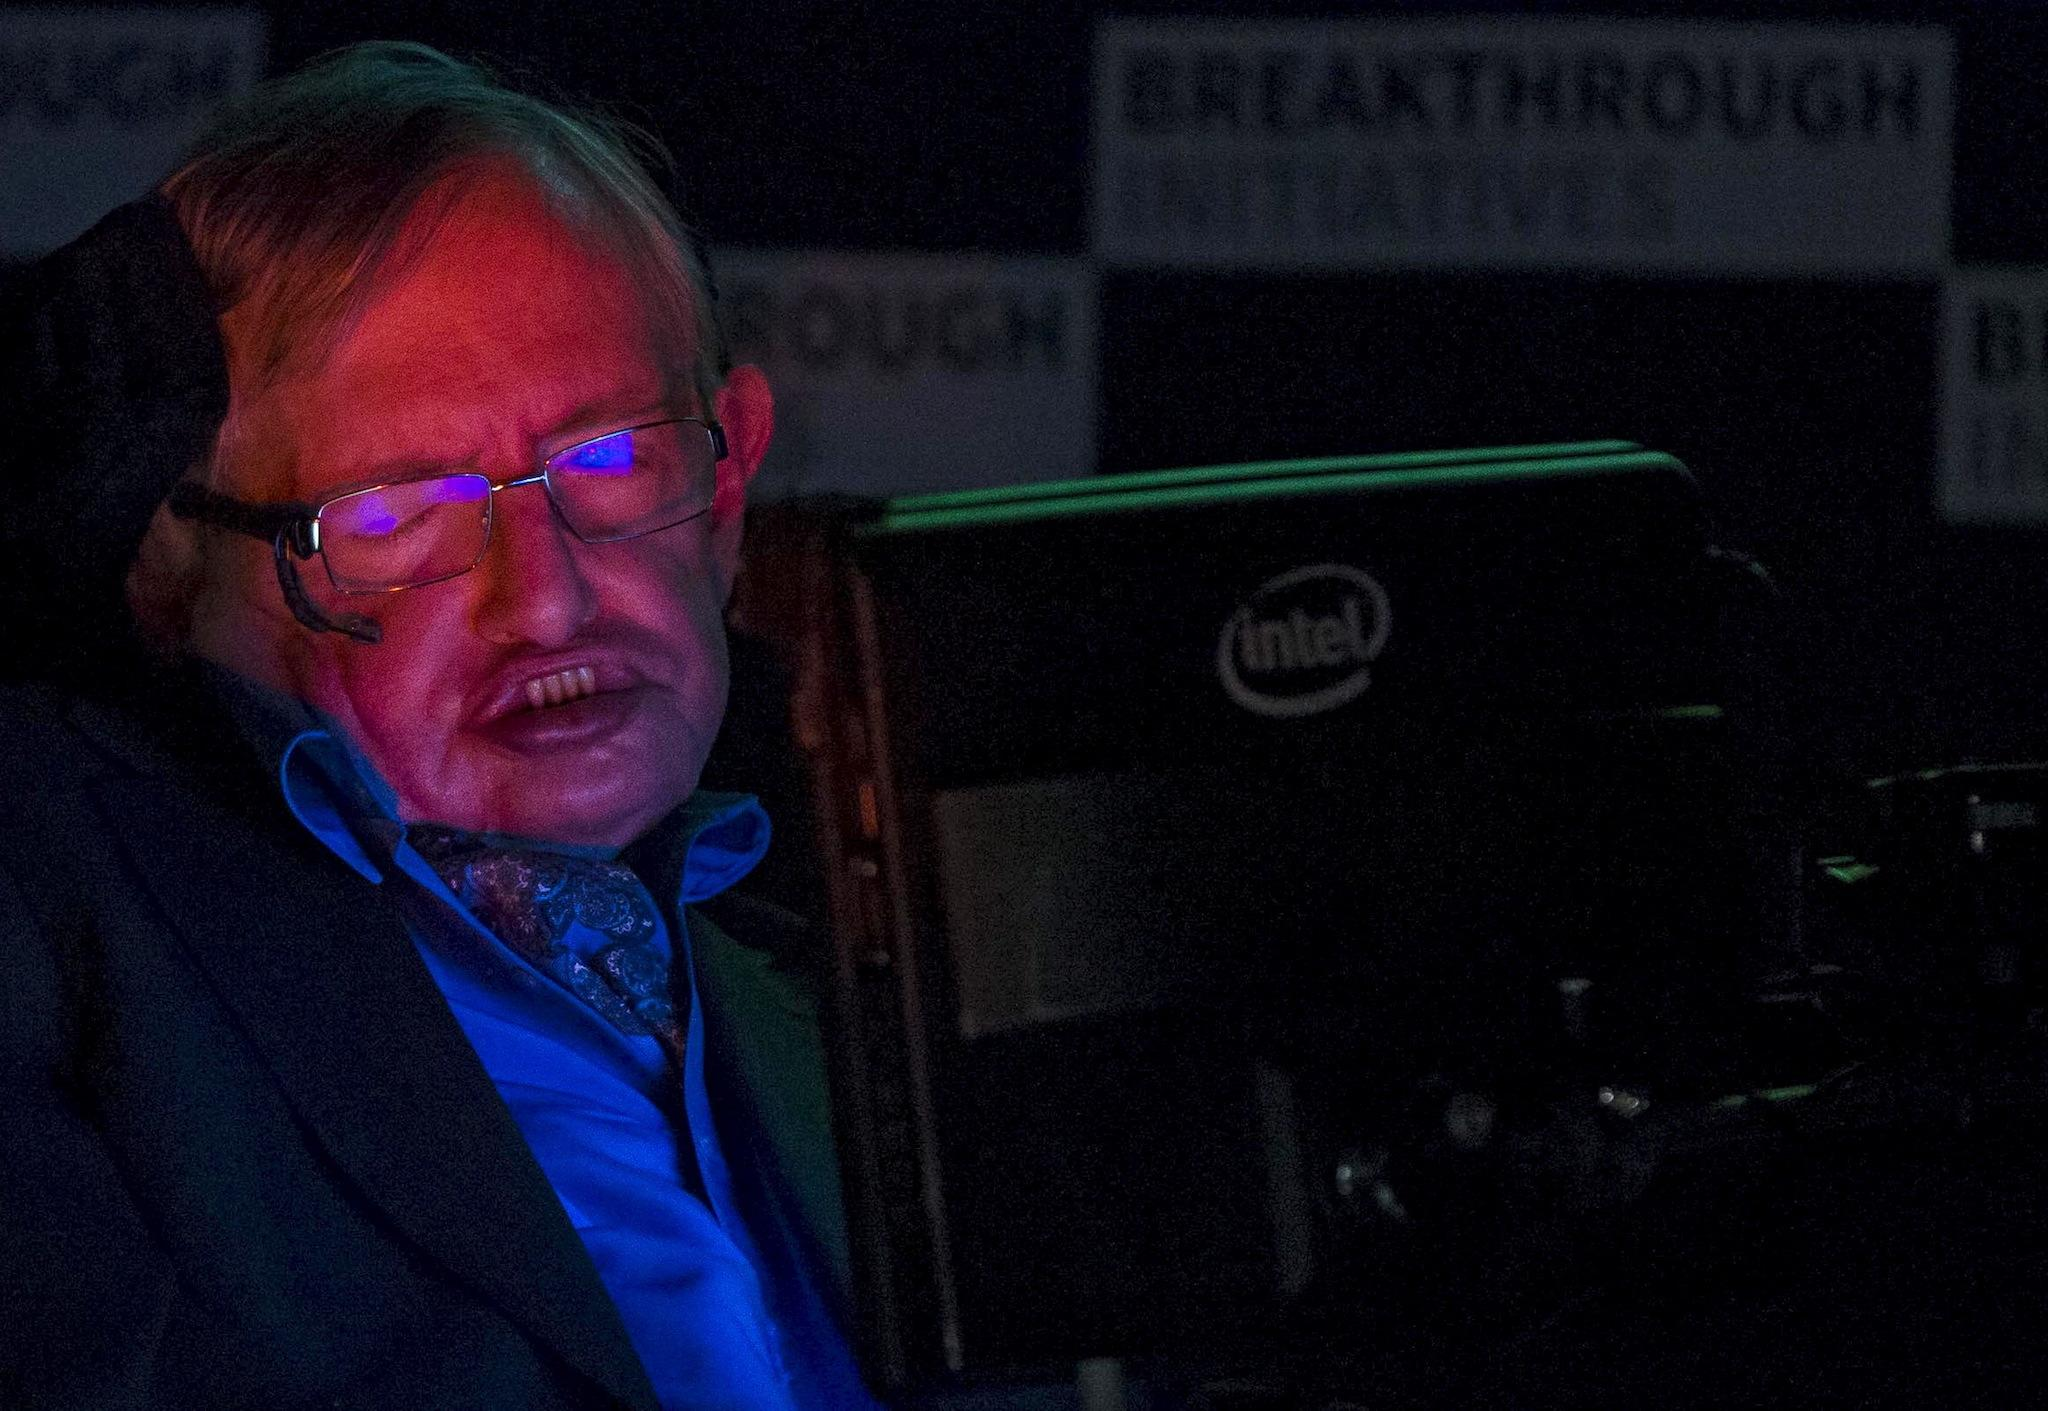 Stephen Hawking's last scientific study published, showing professor grappled with mystery of black holes right up until his death